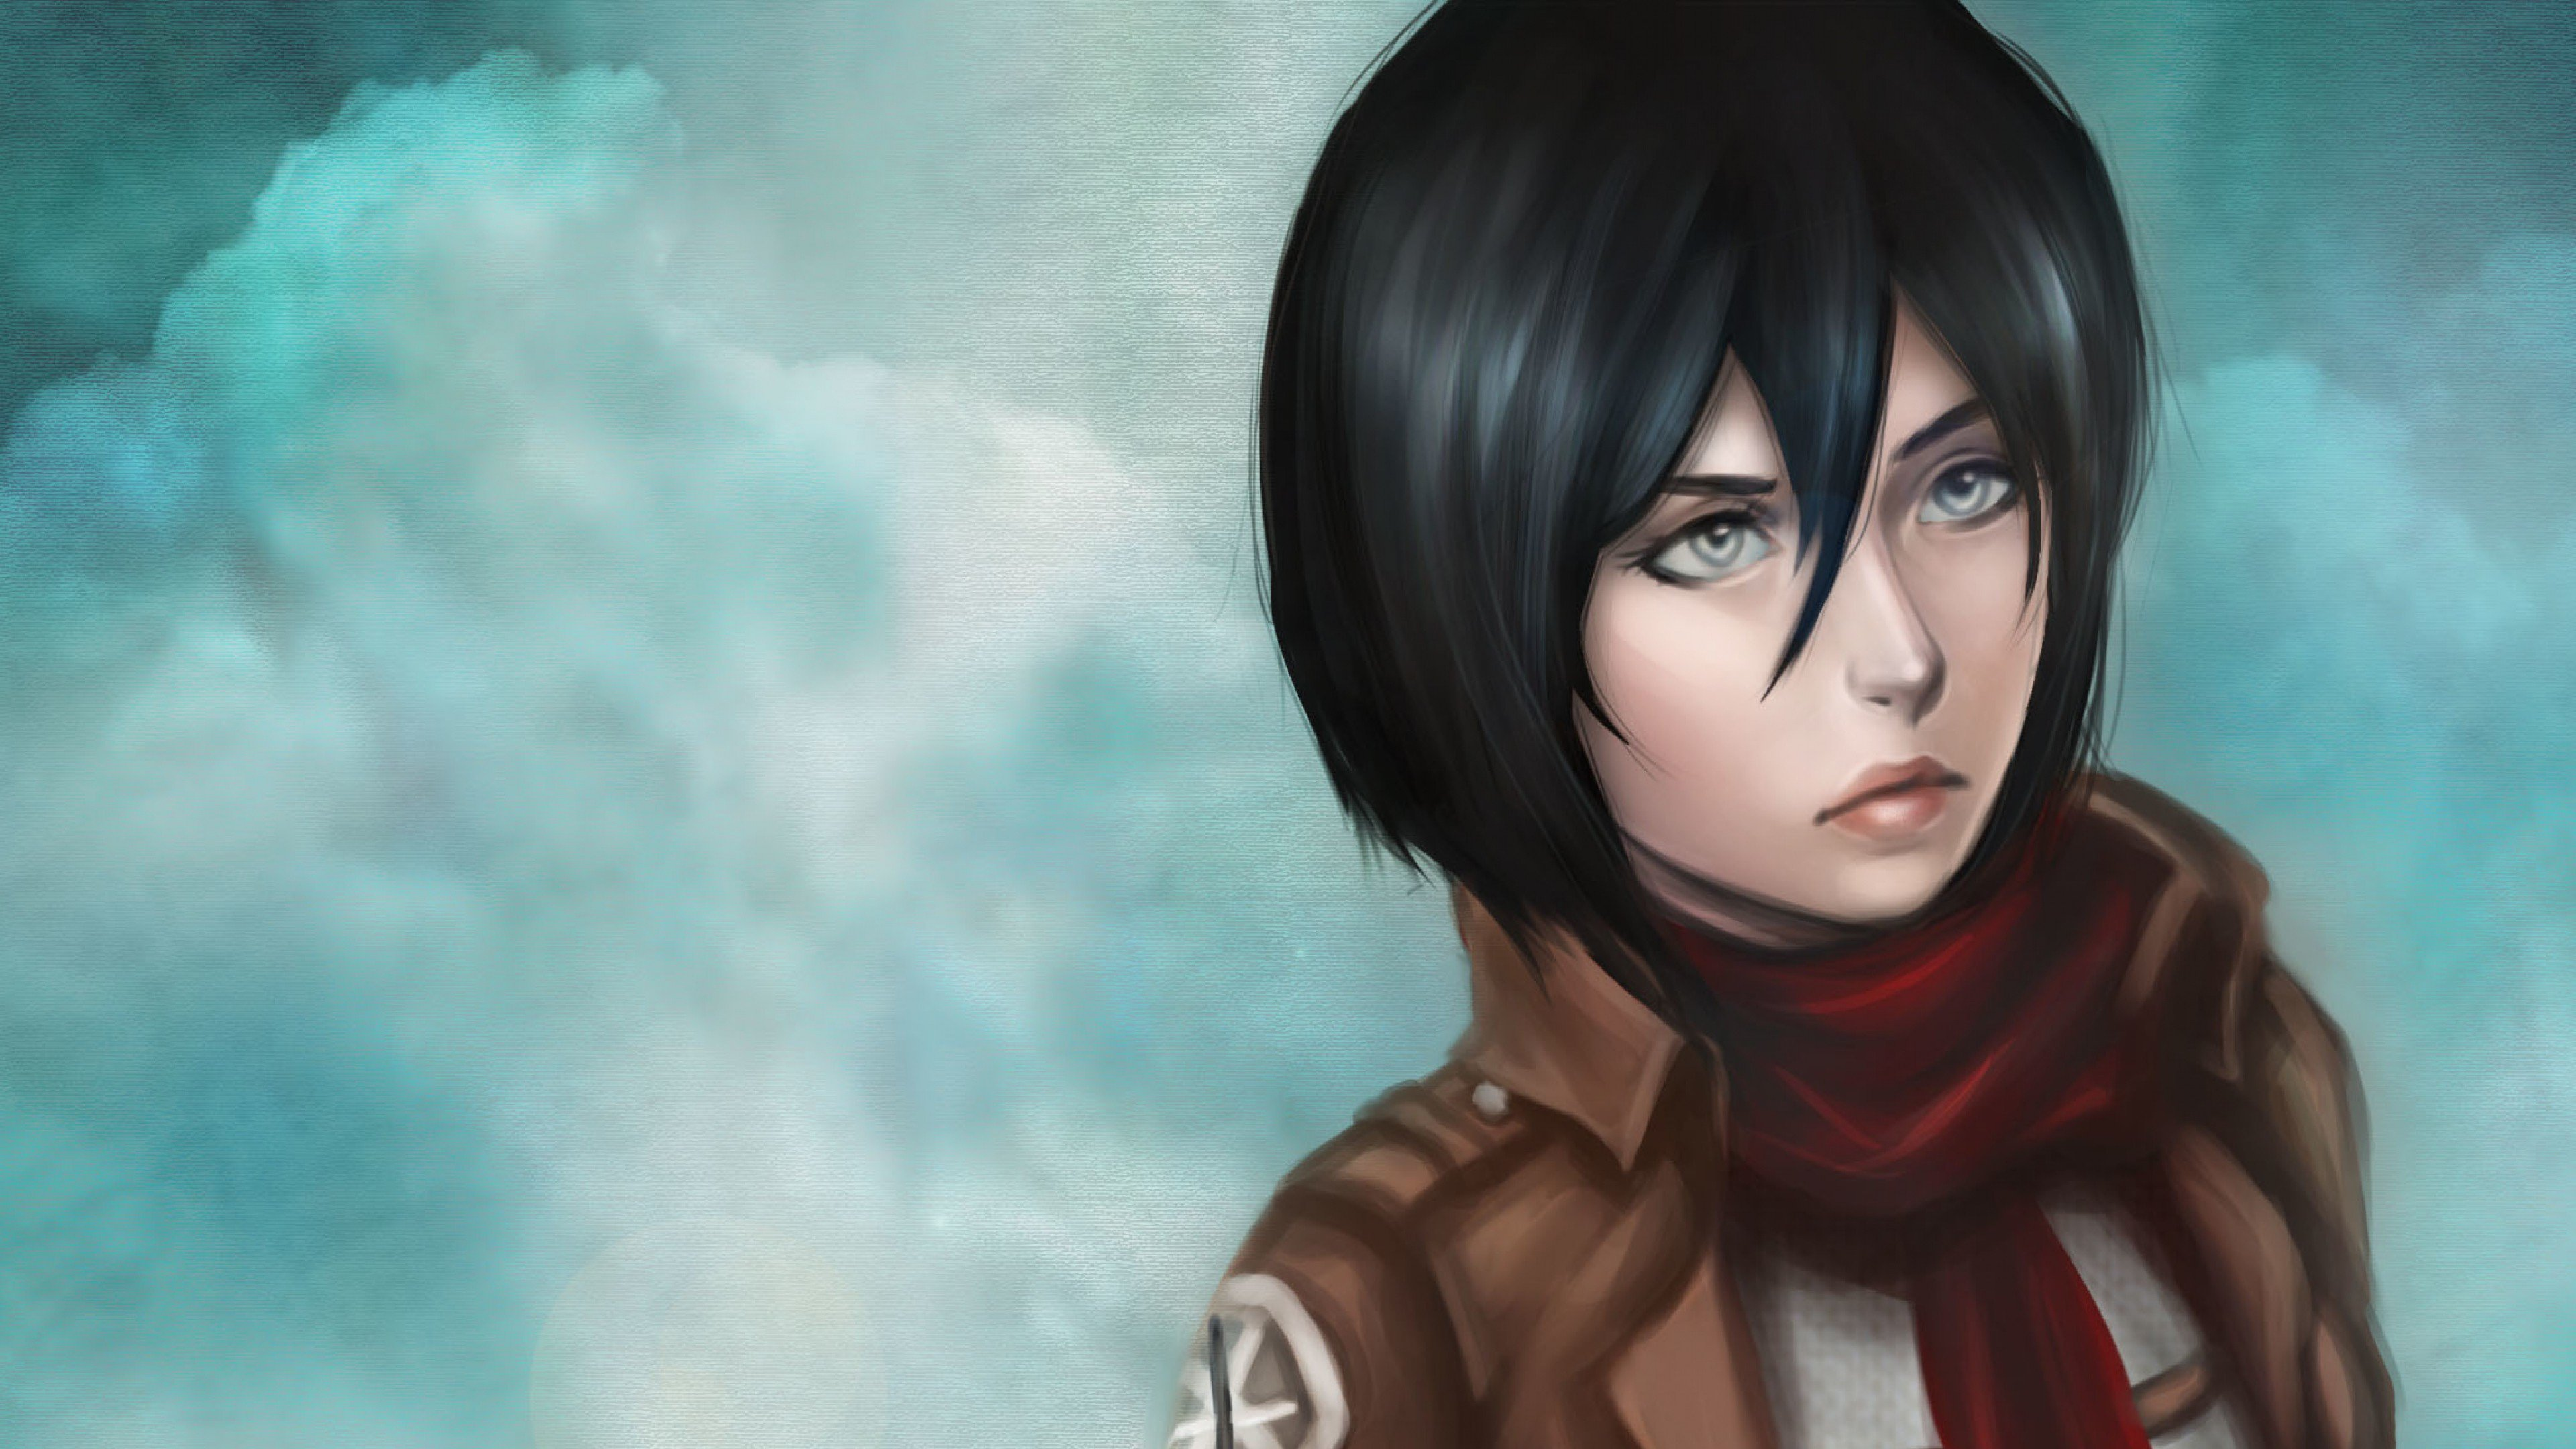 1360x768 Mikasa Ackerman Anime Girl Laptop Hd Hd 4k Wallpapers Images Backgrounds Photos And Pictures